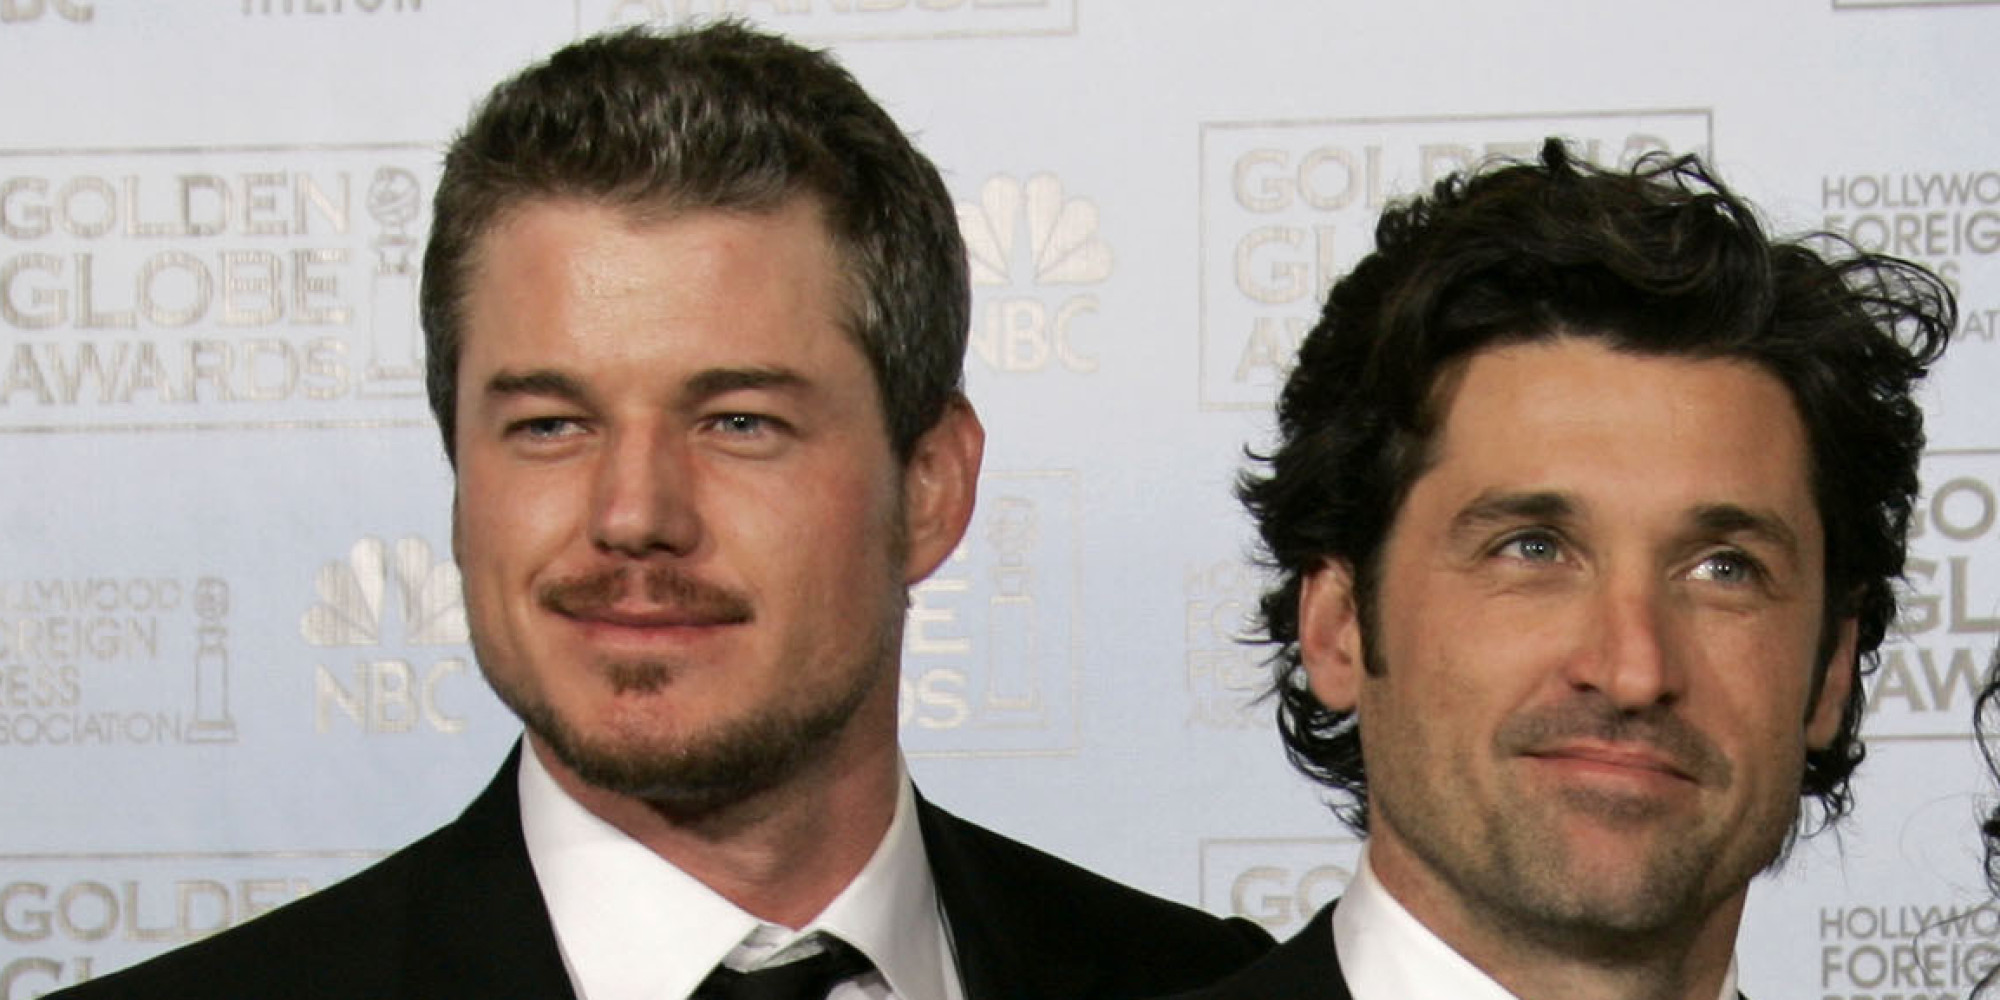 Eric Dane On The Exits Of Mcdreamy And Mcsteamy On Greys Anatomy